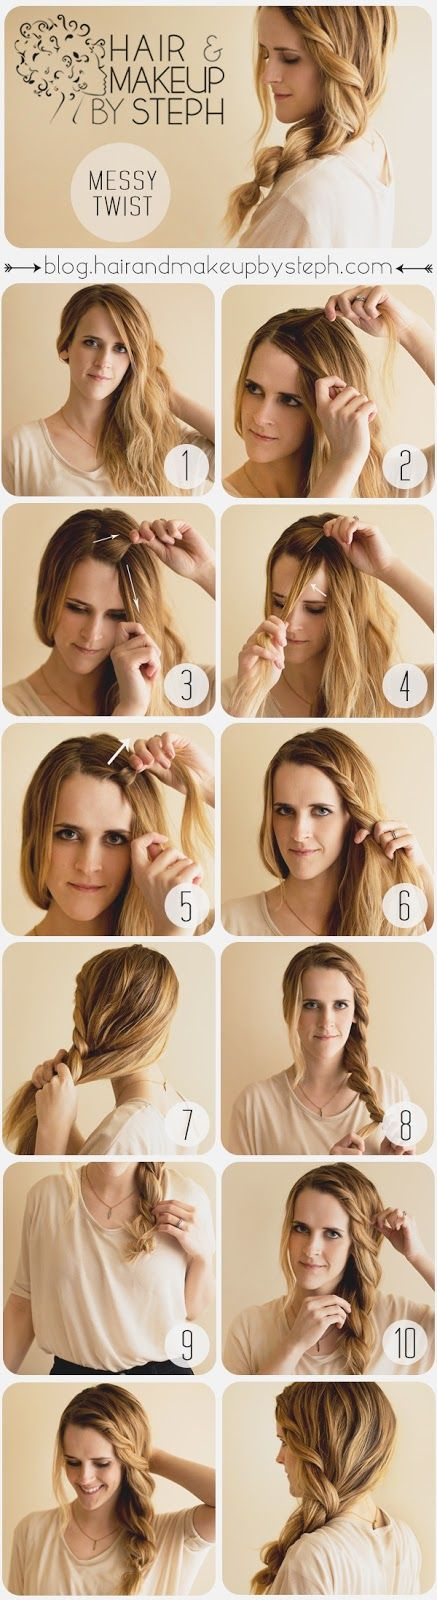 20 Cute And Easy Hairstyle Ideas And Tutorials Hair Styles Long Hair Styles Hair